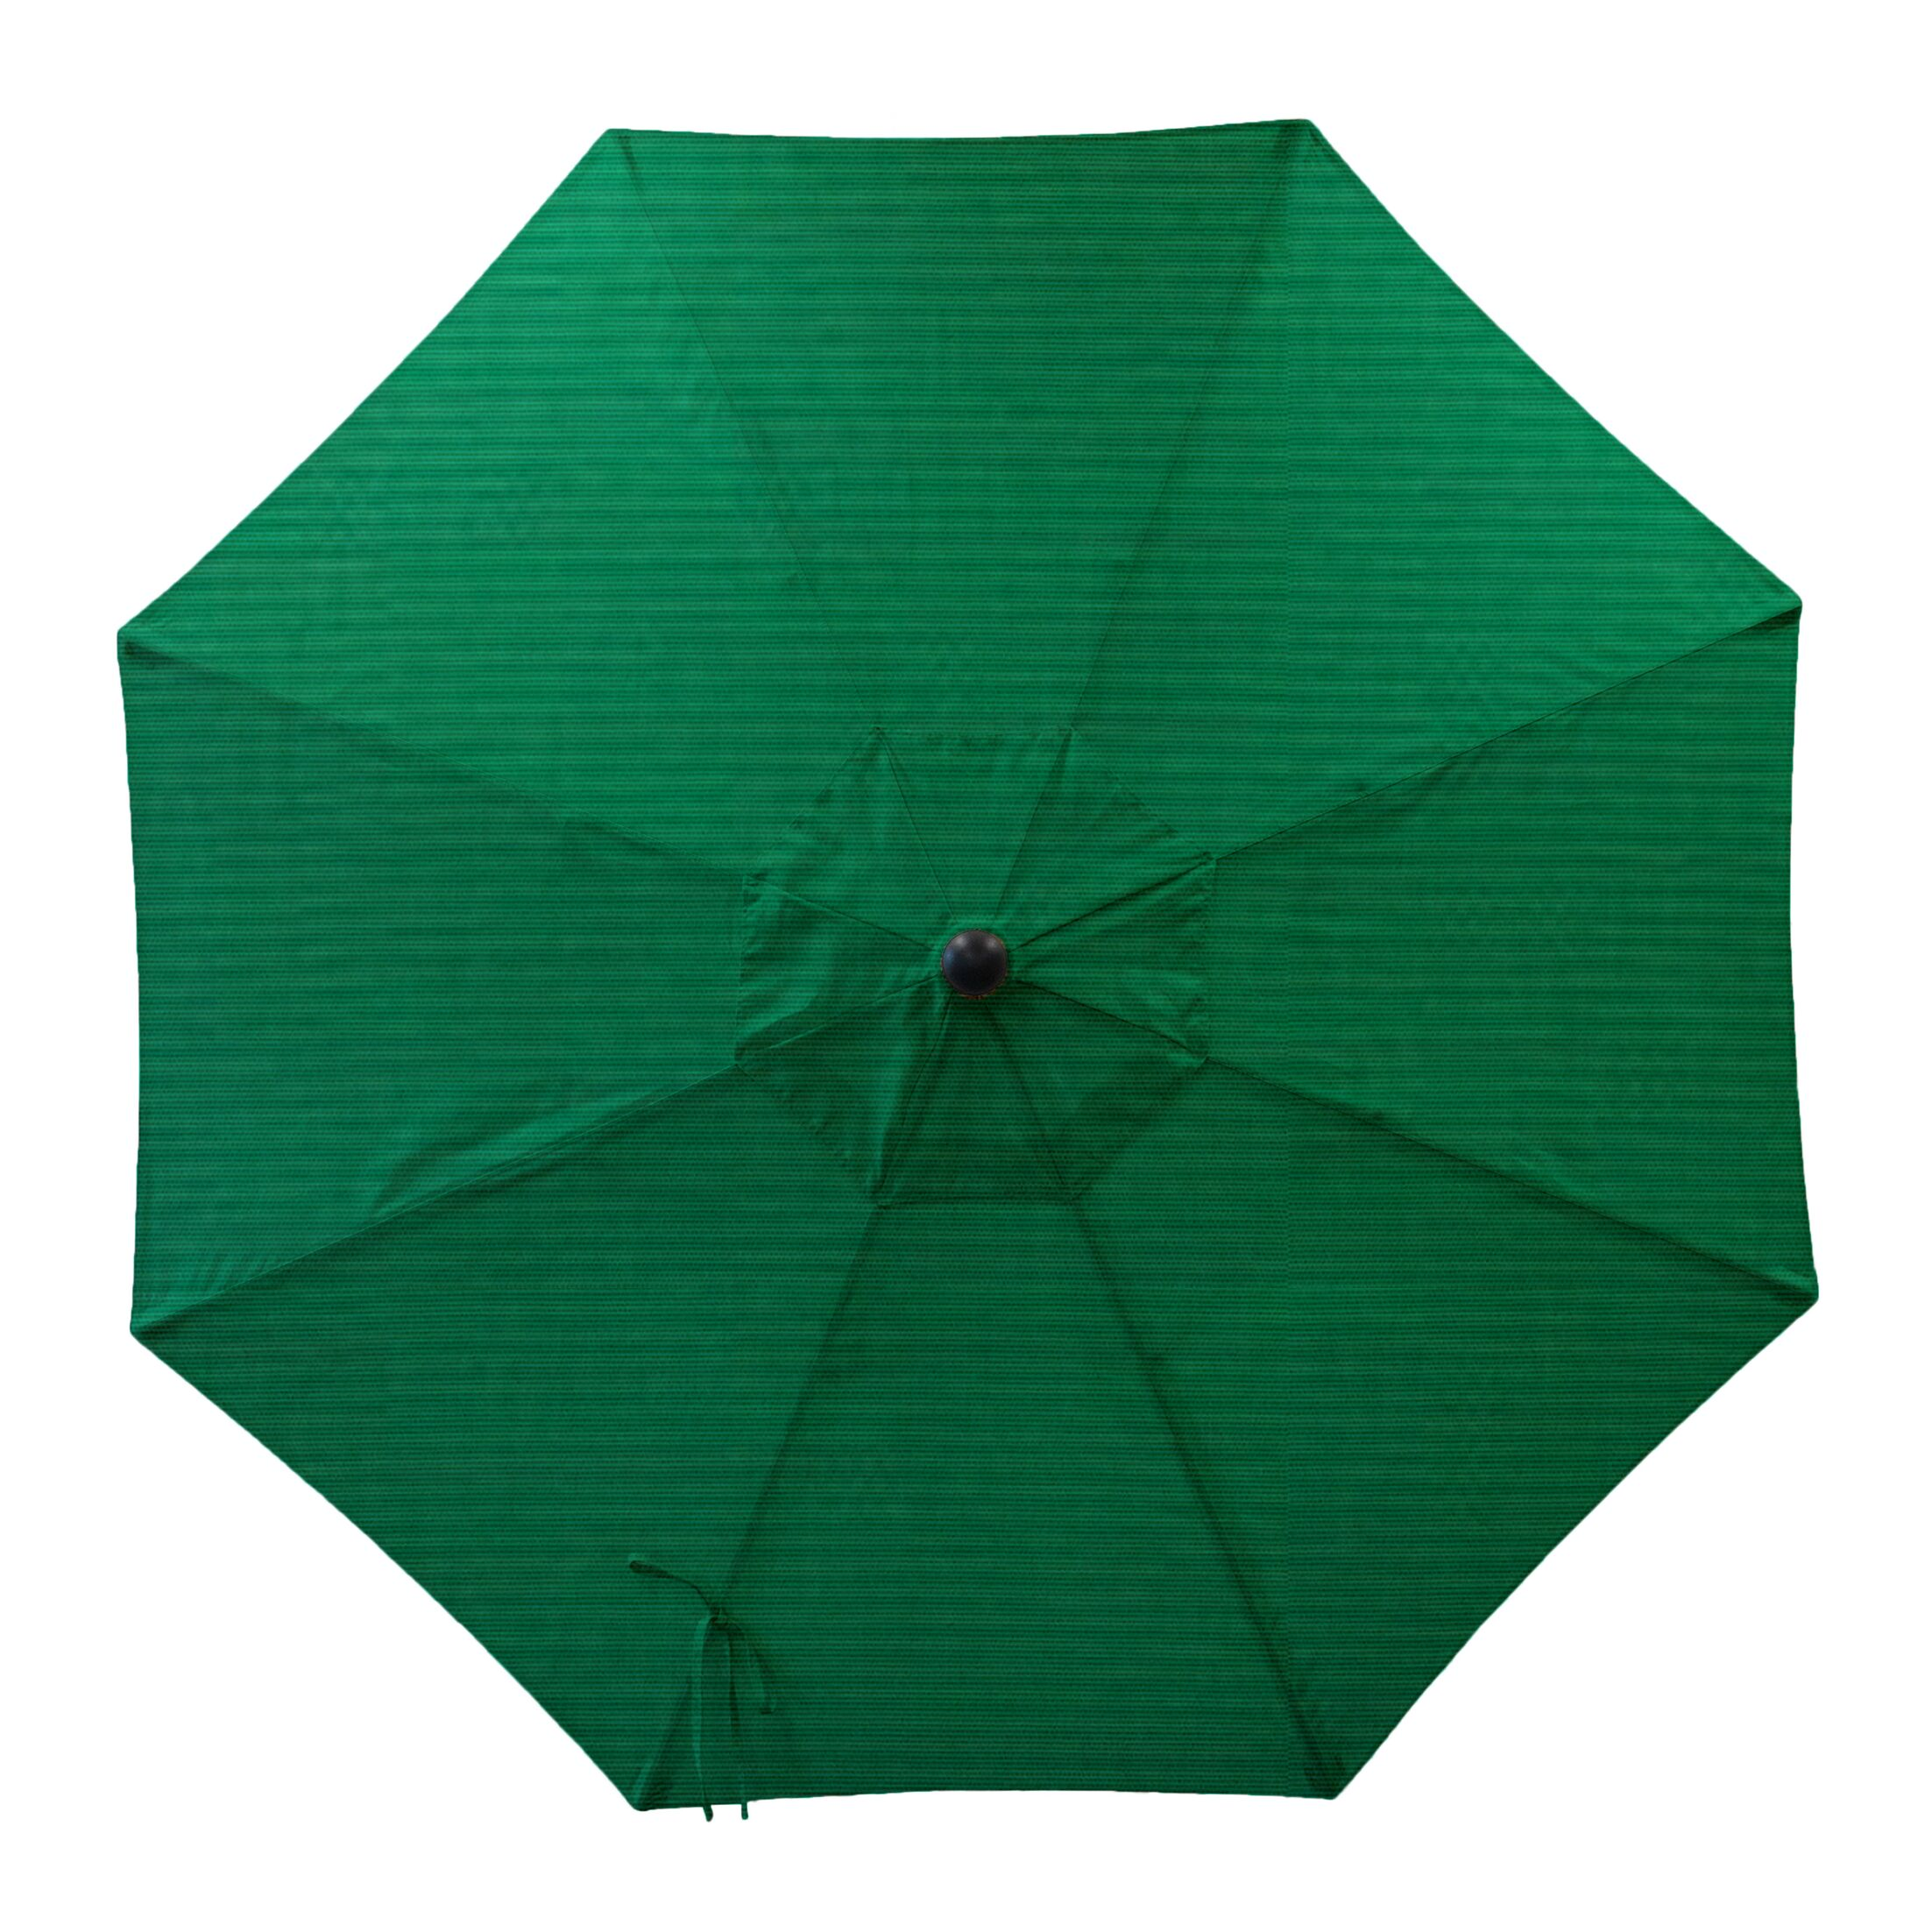 Centeno Double Pulley 9' Market Umbrella Fabric Color: Forest Green, Frame Color: Silver Mirror